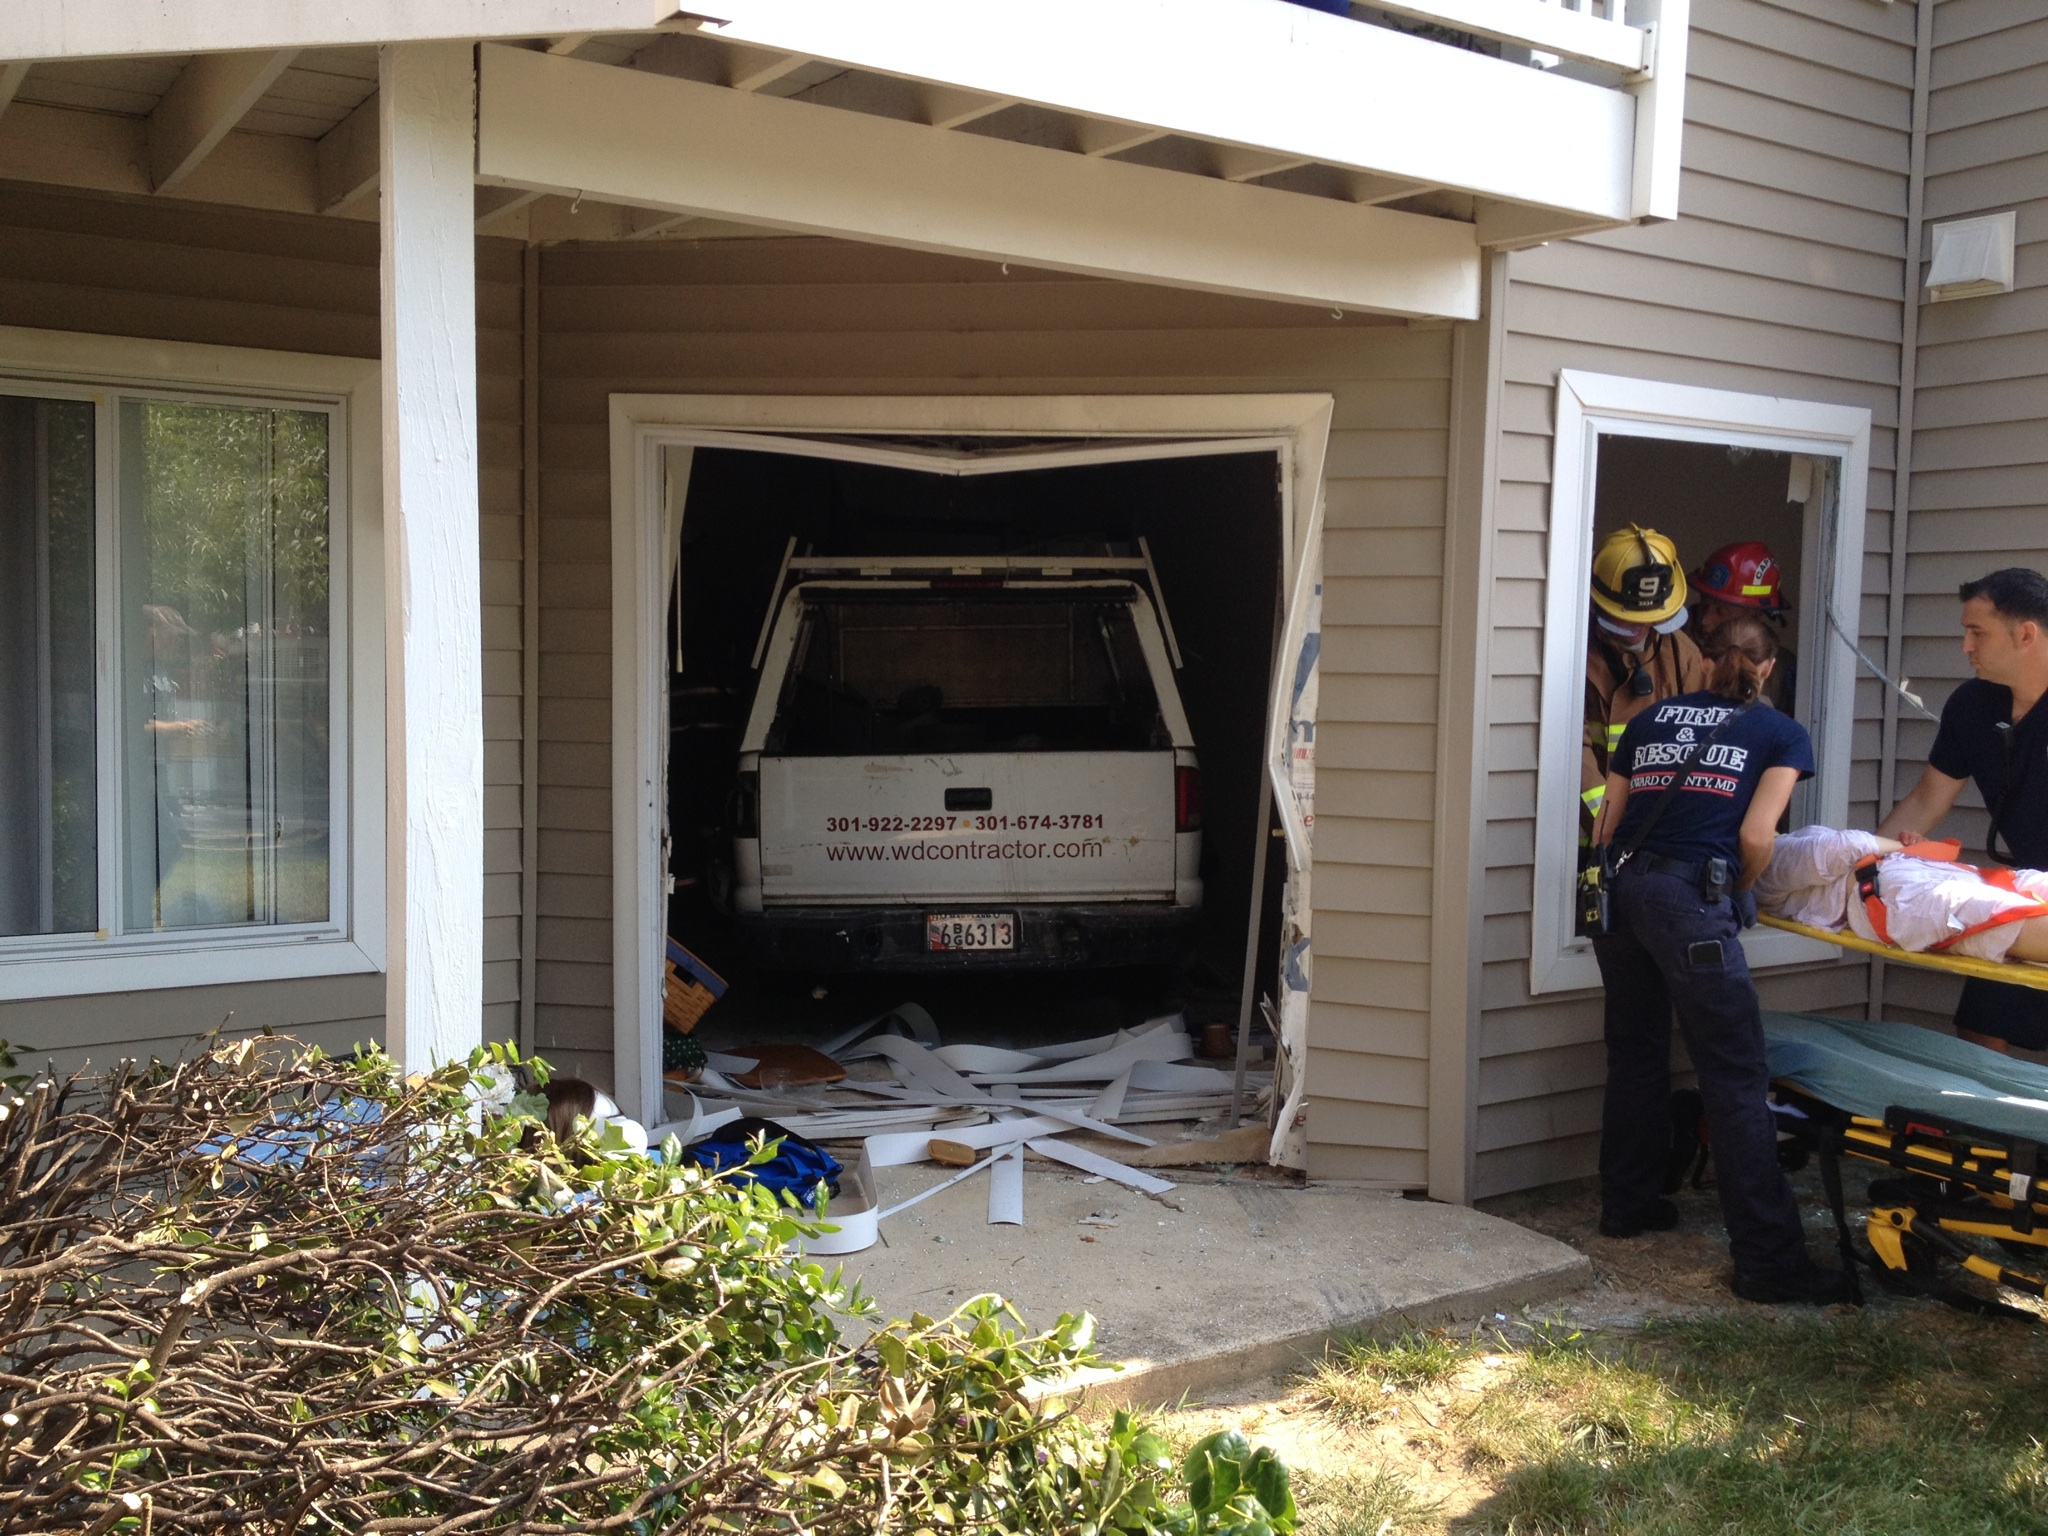 Driver charged after truck crashes into Md. apartment